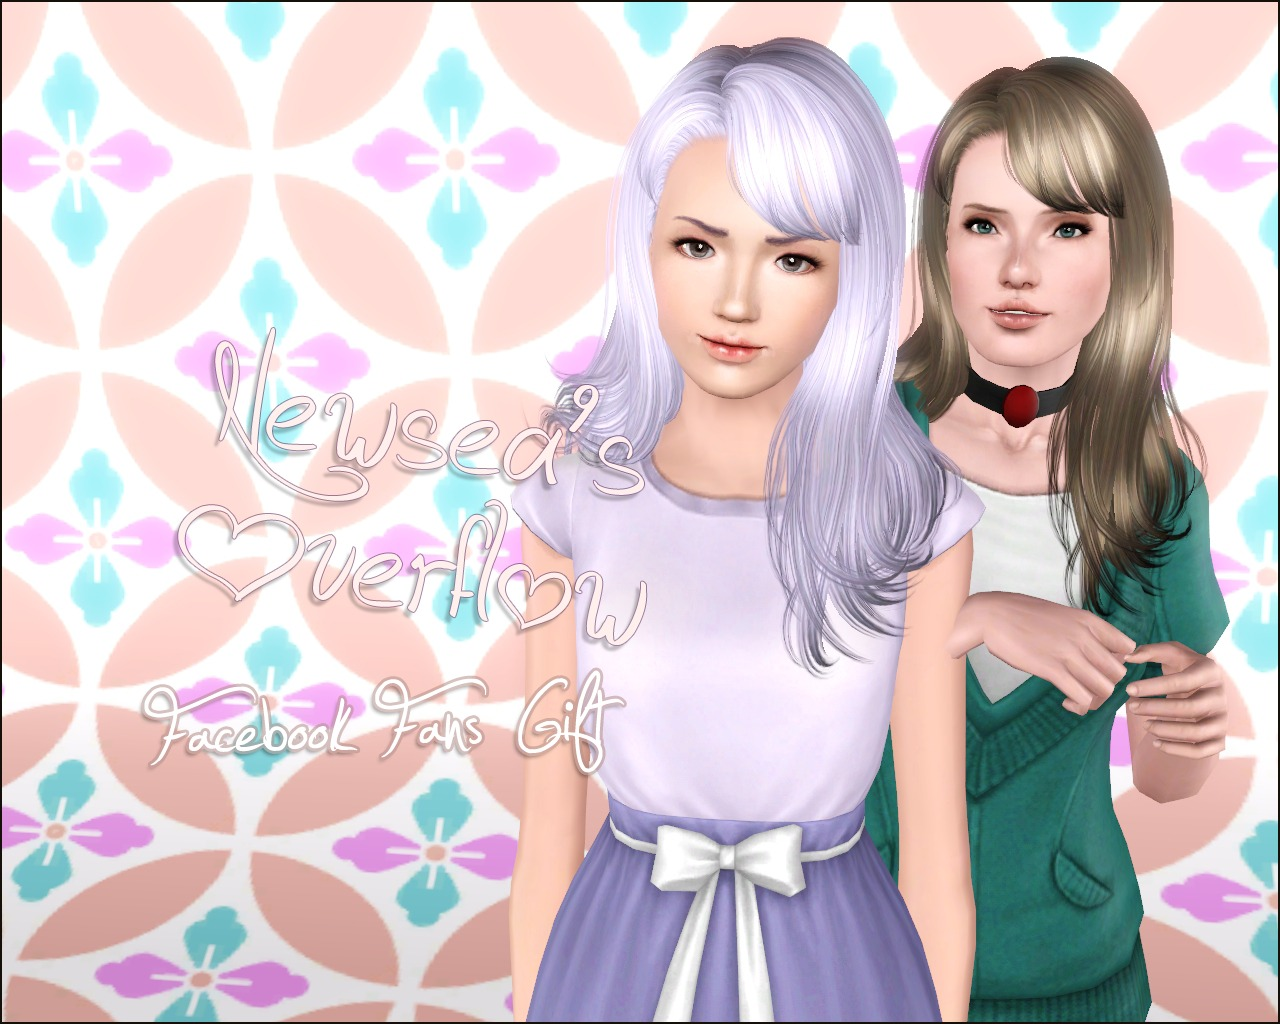 [FB Exclusive!] Newseas Overflow - Retextured for Teens to Elder by Eternila